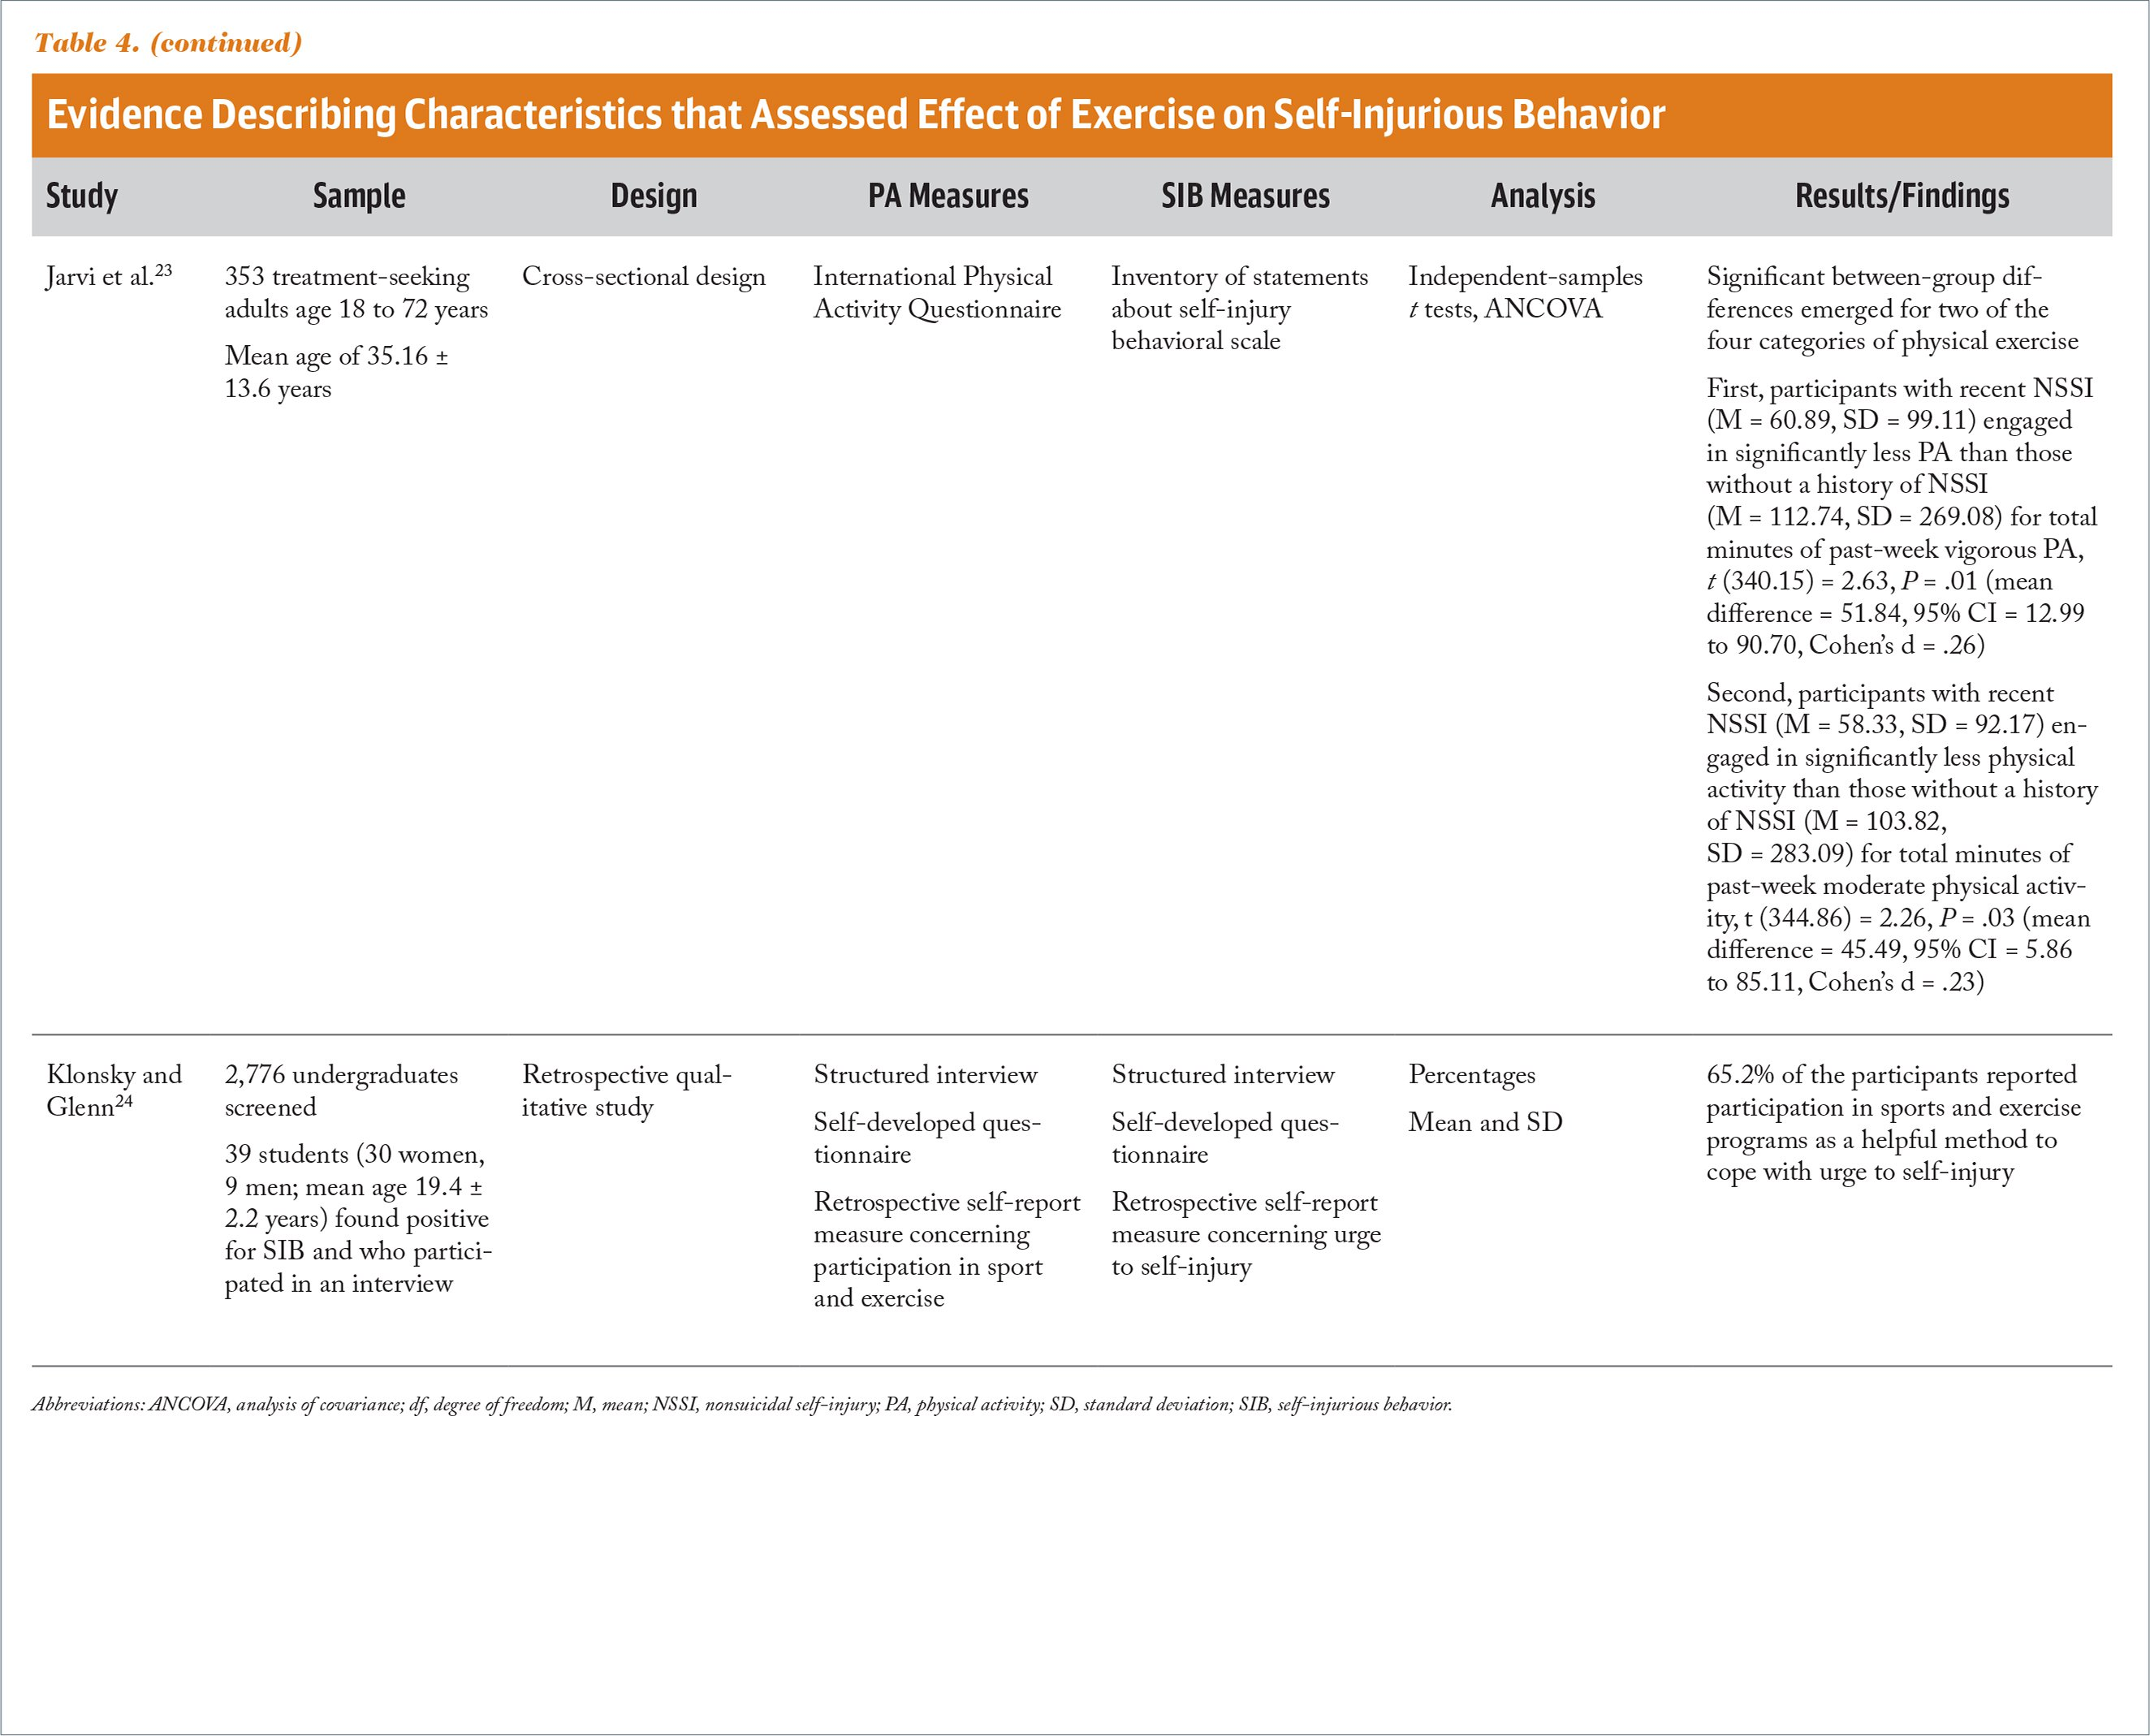 Evidence Describing Characteristics that Assessed Effect of Exercise on Self-Injurious Behavior